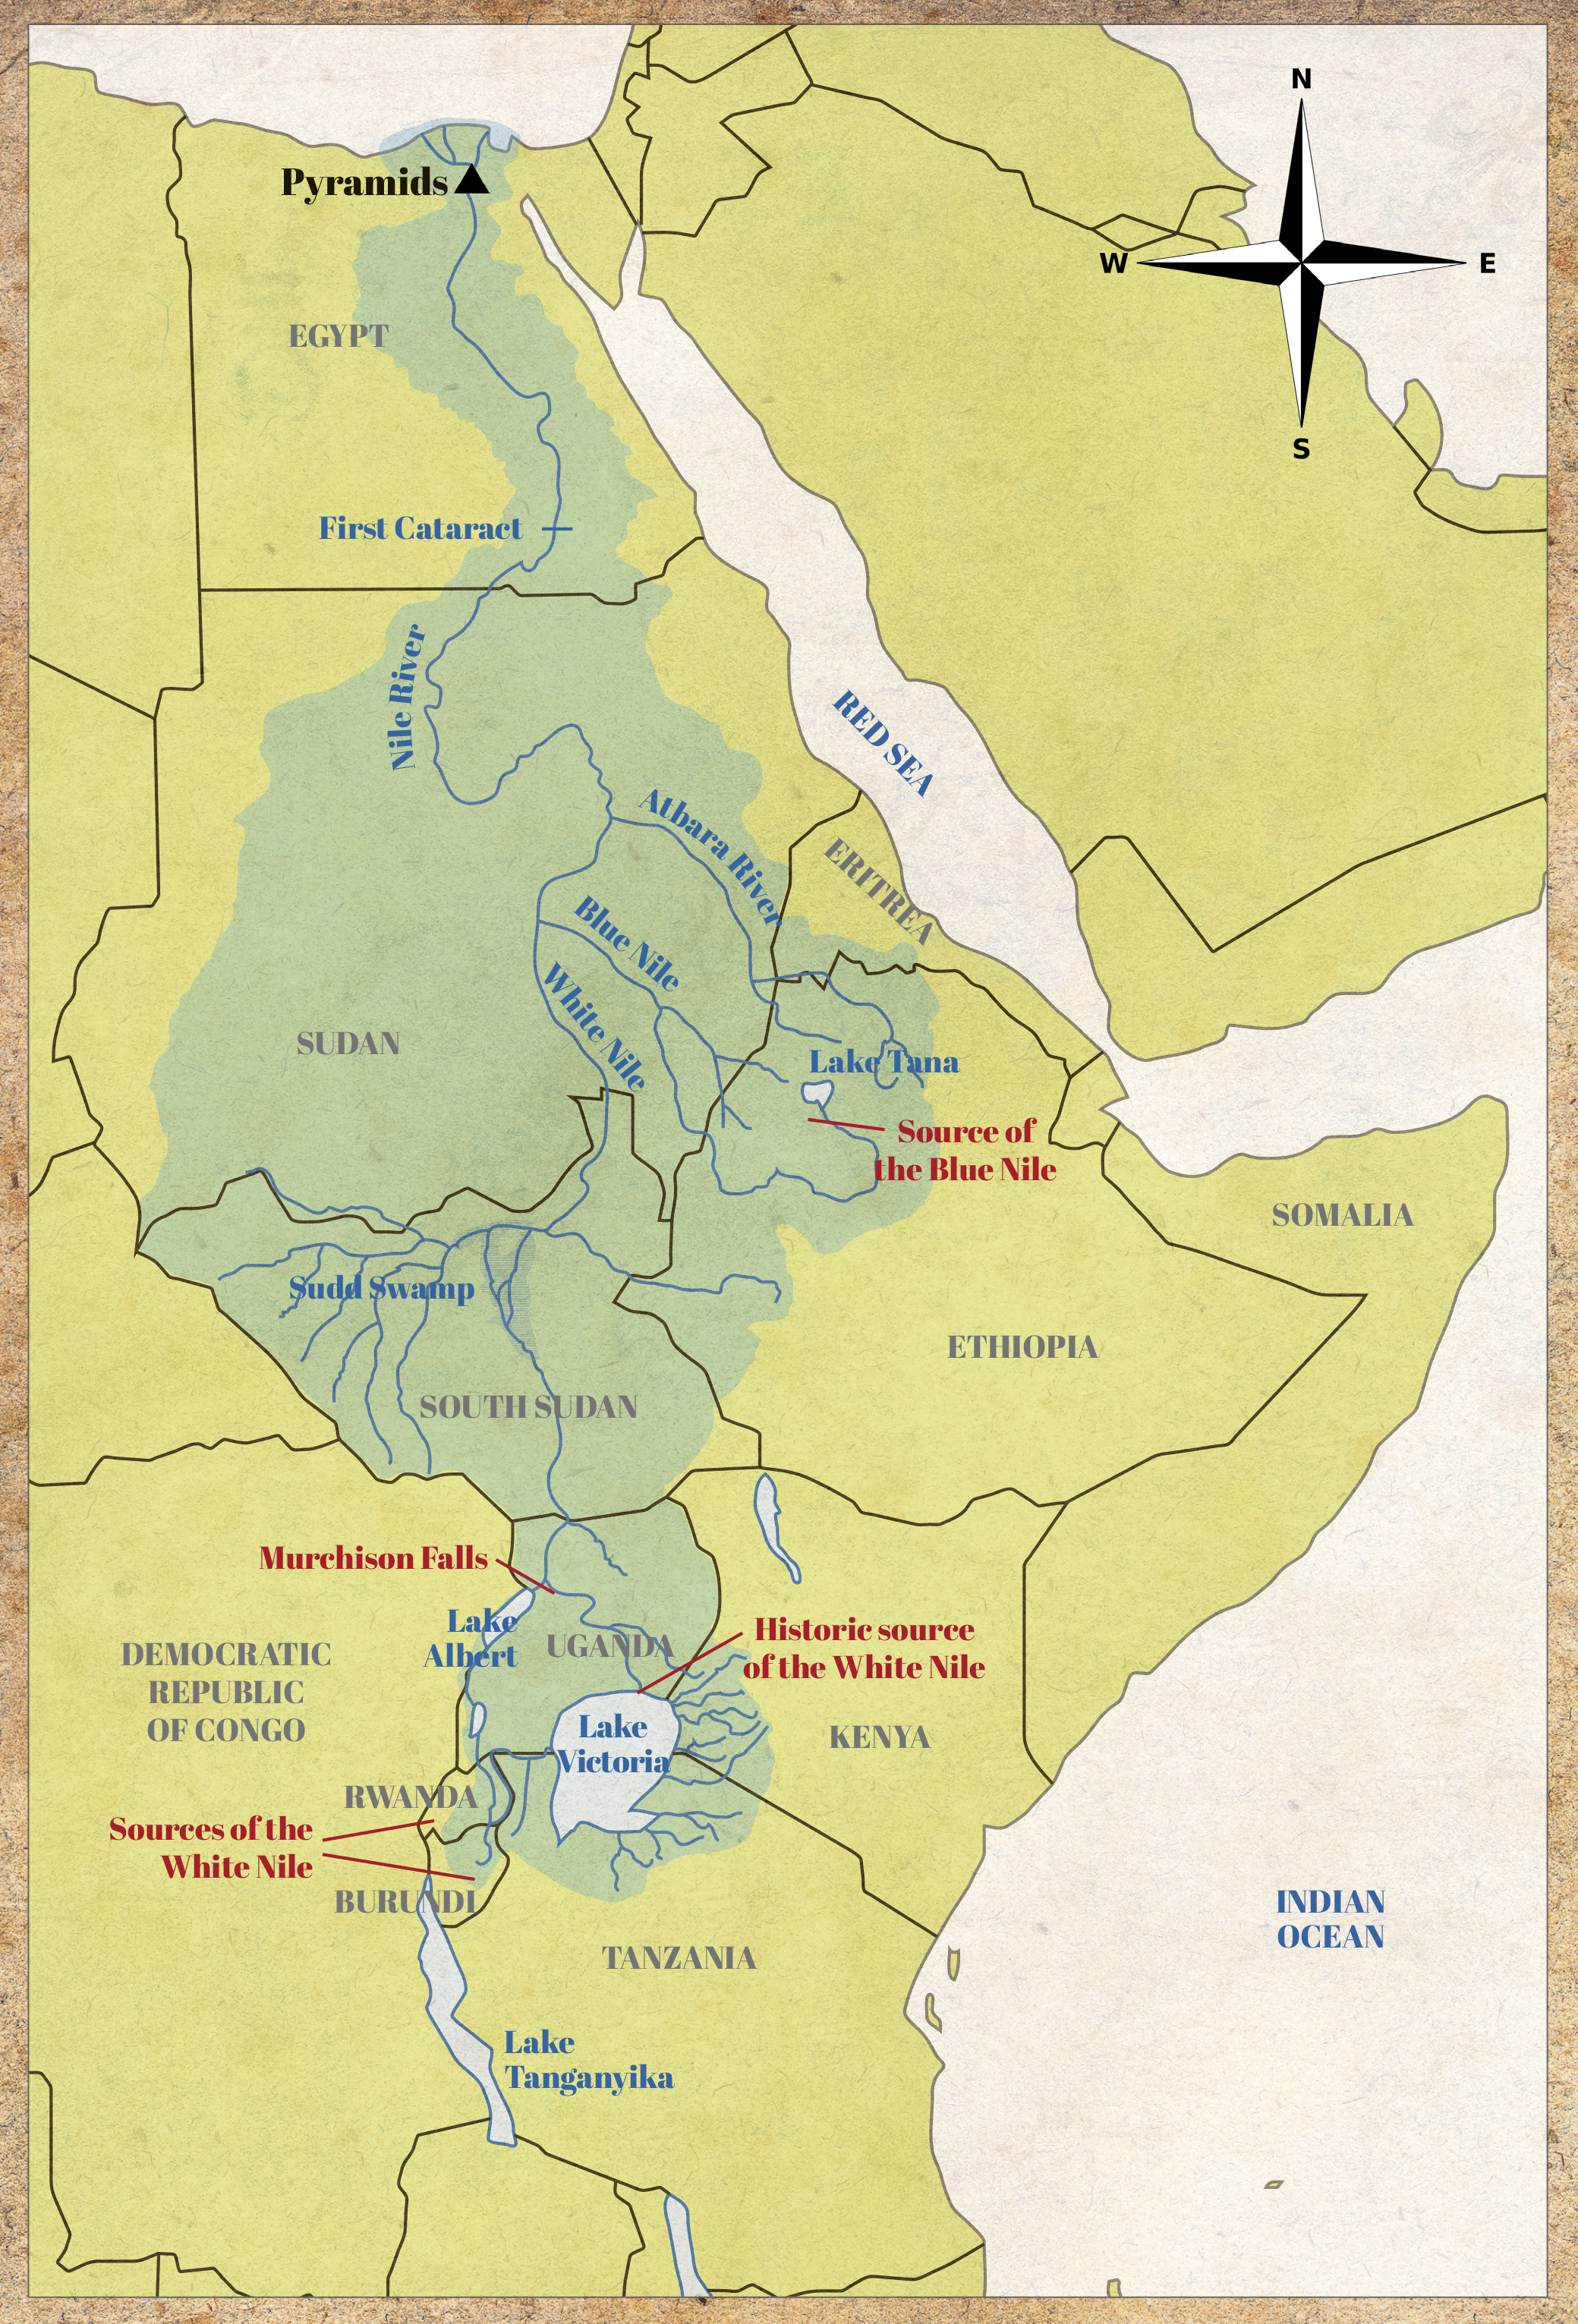 Map of the religious Nile. From North to South, different features are listed: Source of Blue Nile, Murchison Falls, Historic source of the White Nile, and the Sources of the White Nile.